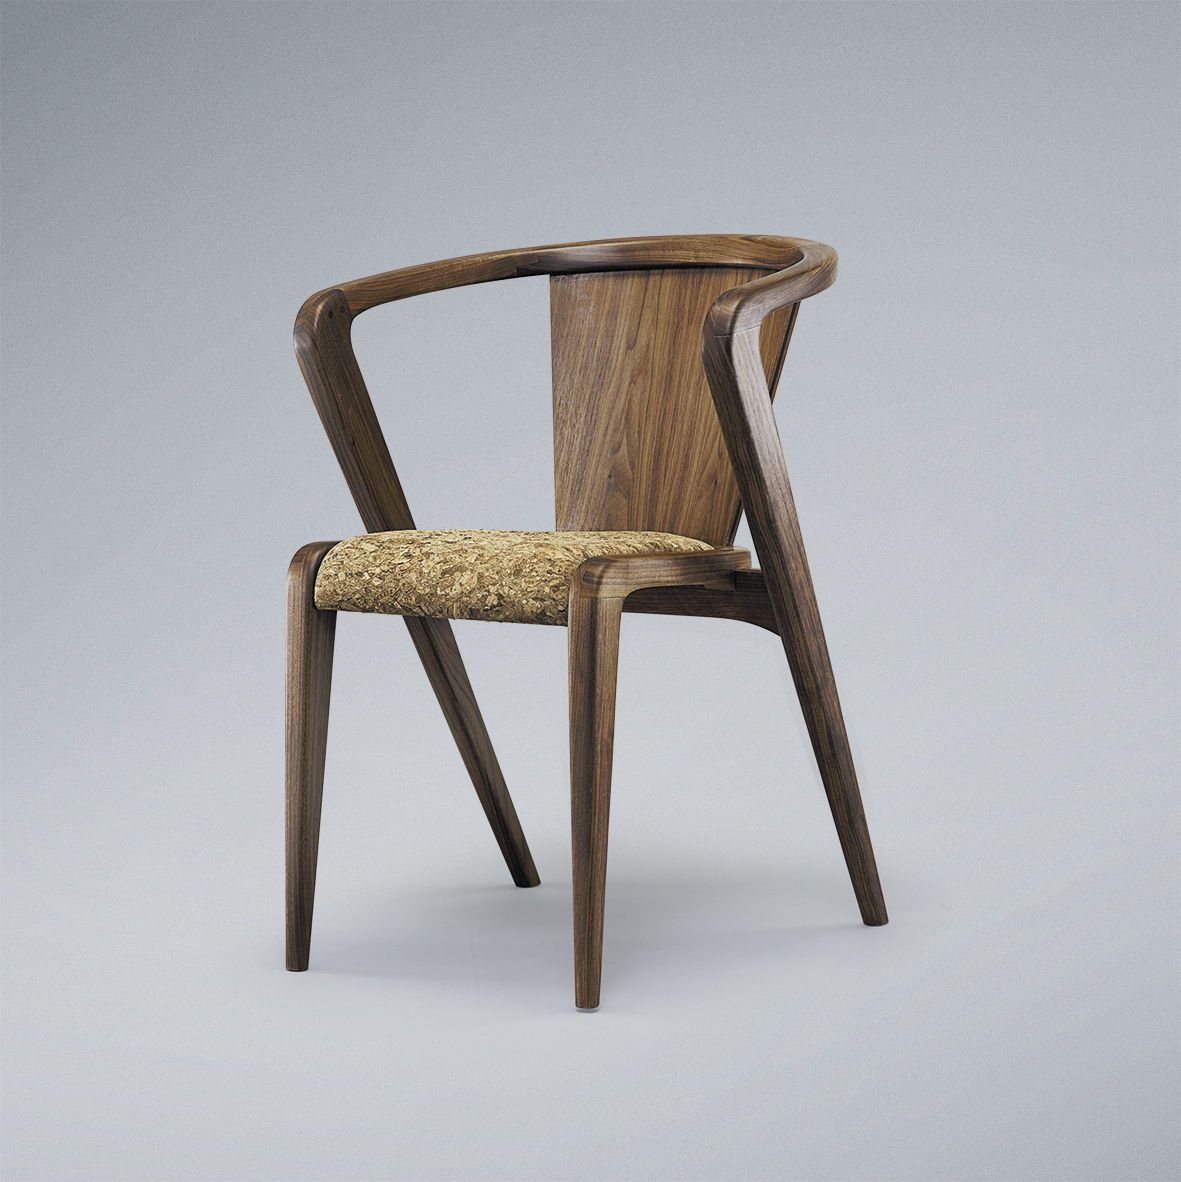 Wooden chairs with armrest - Contemporary Chair With Armrests In Wood Standard Base Portuguese Roots Aroundthetree